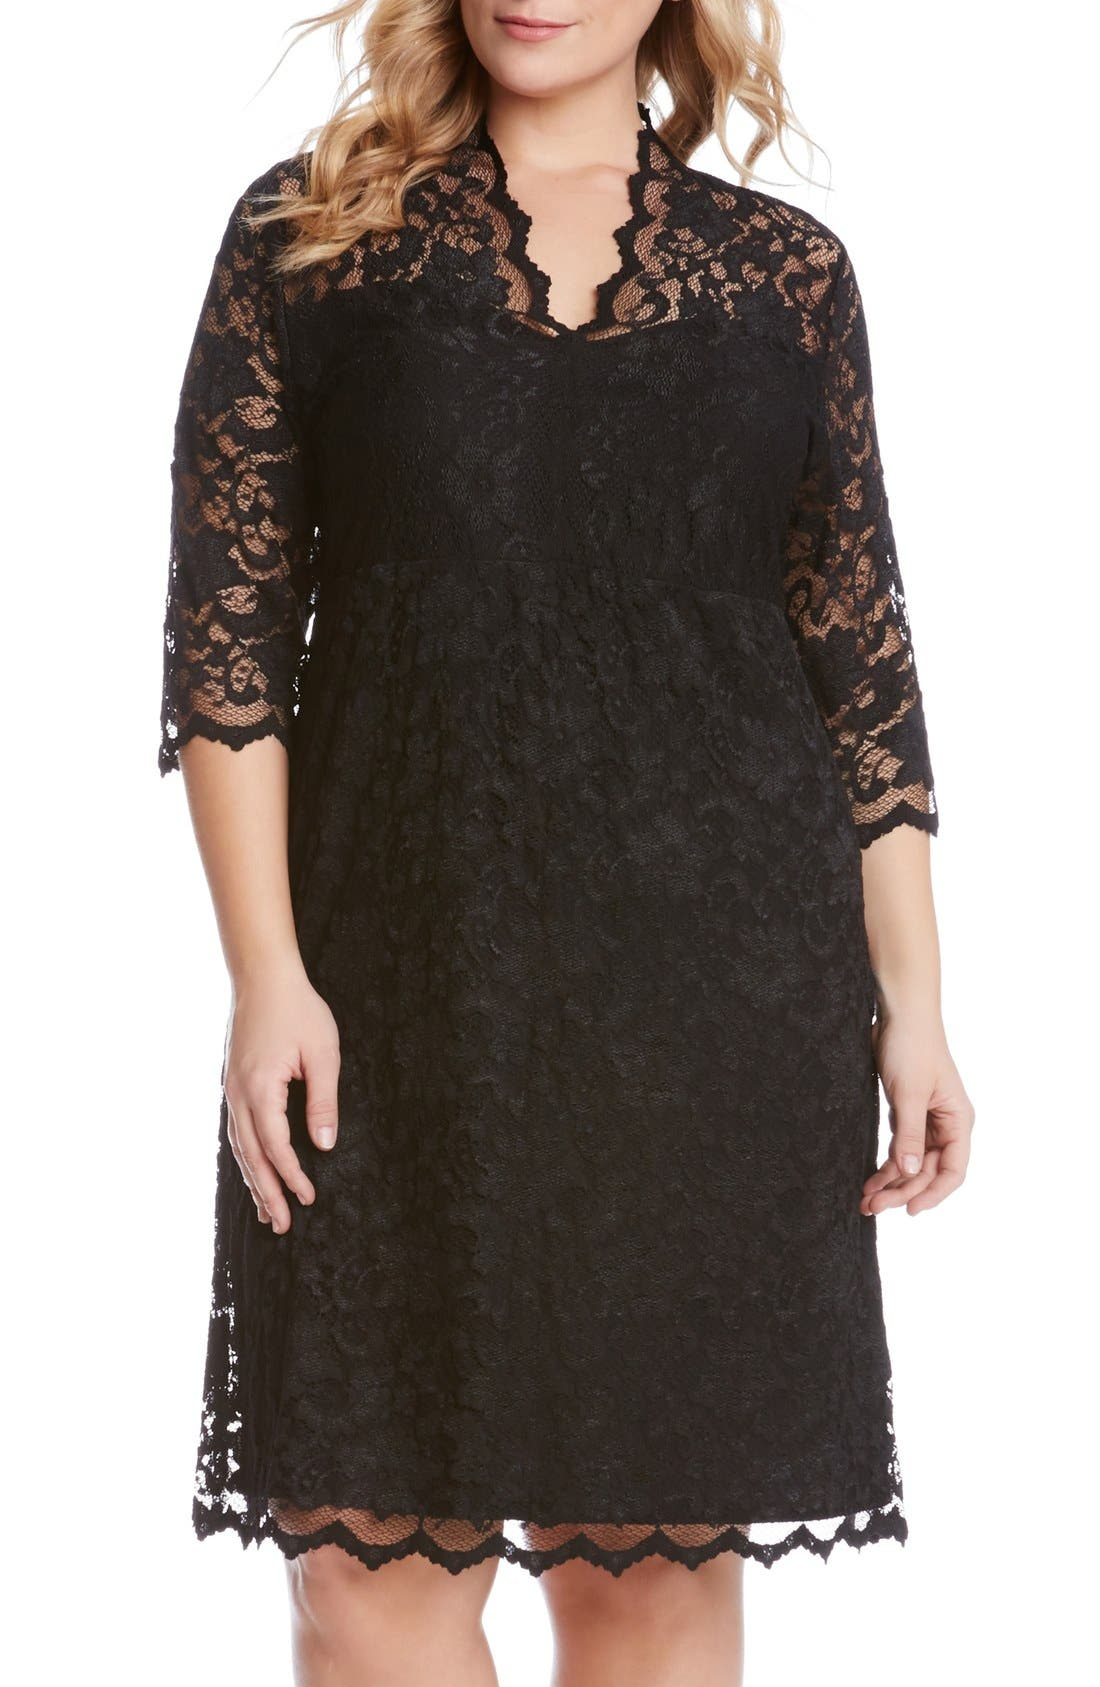 Alternate Image 1 Selected - Karen Kane Scalloped Stretch Lace Dress (Plus Size)